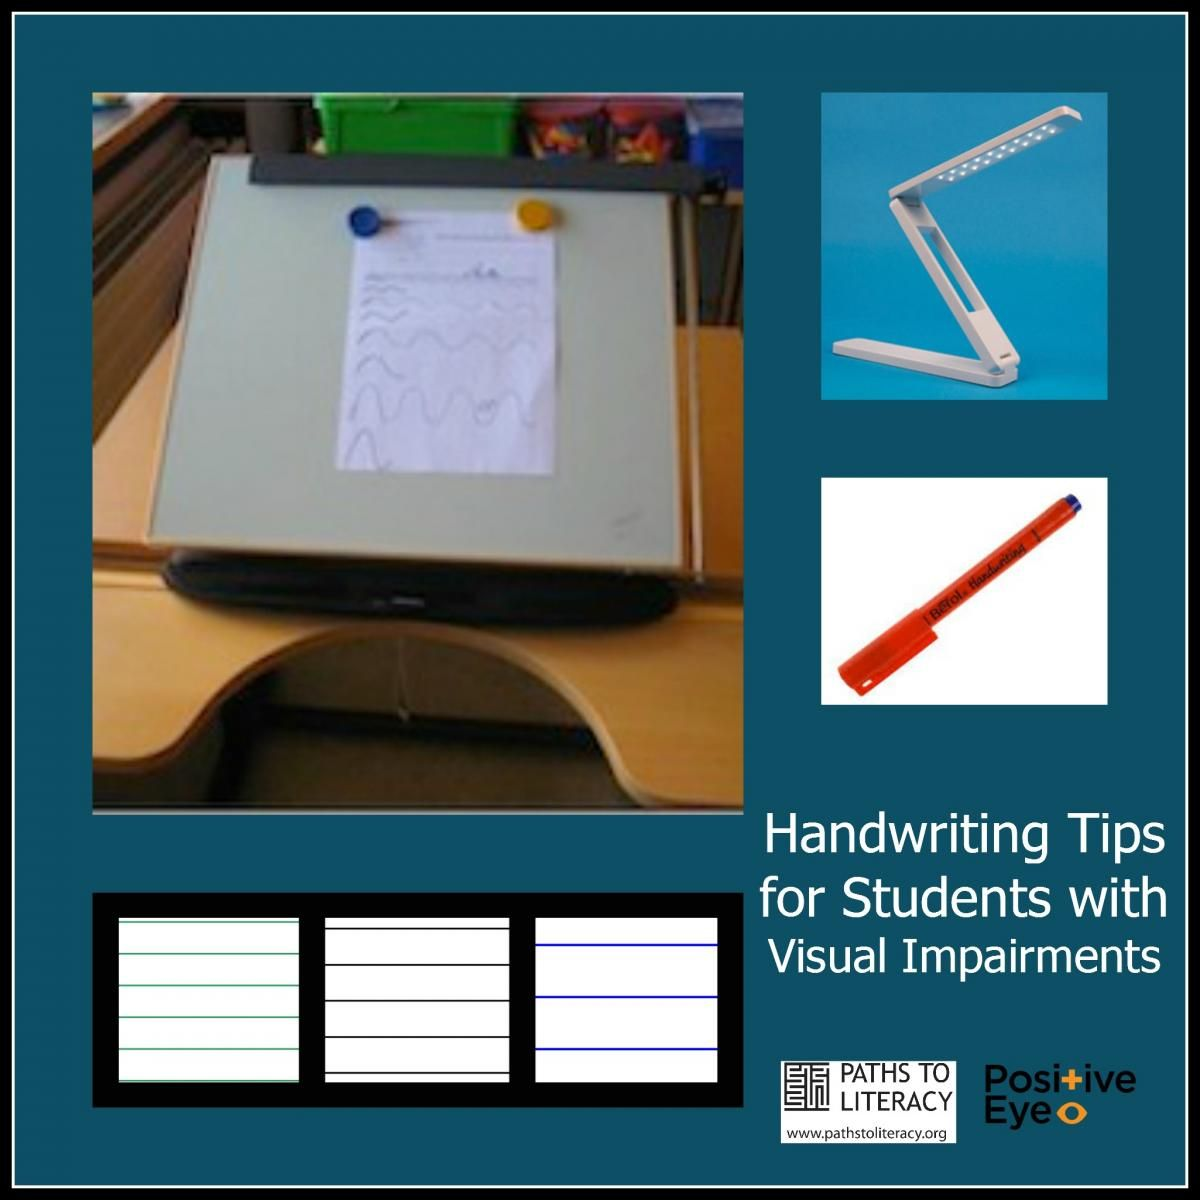 Handwriting Tips For Students With Visual Impairments